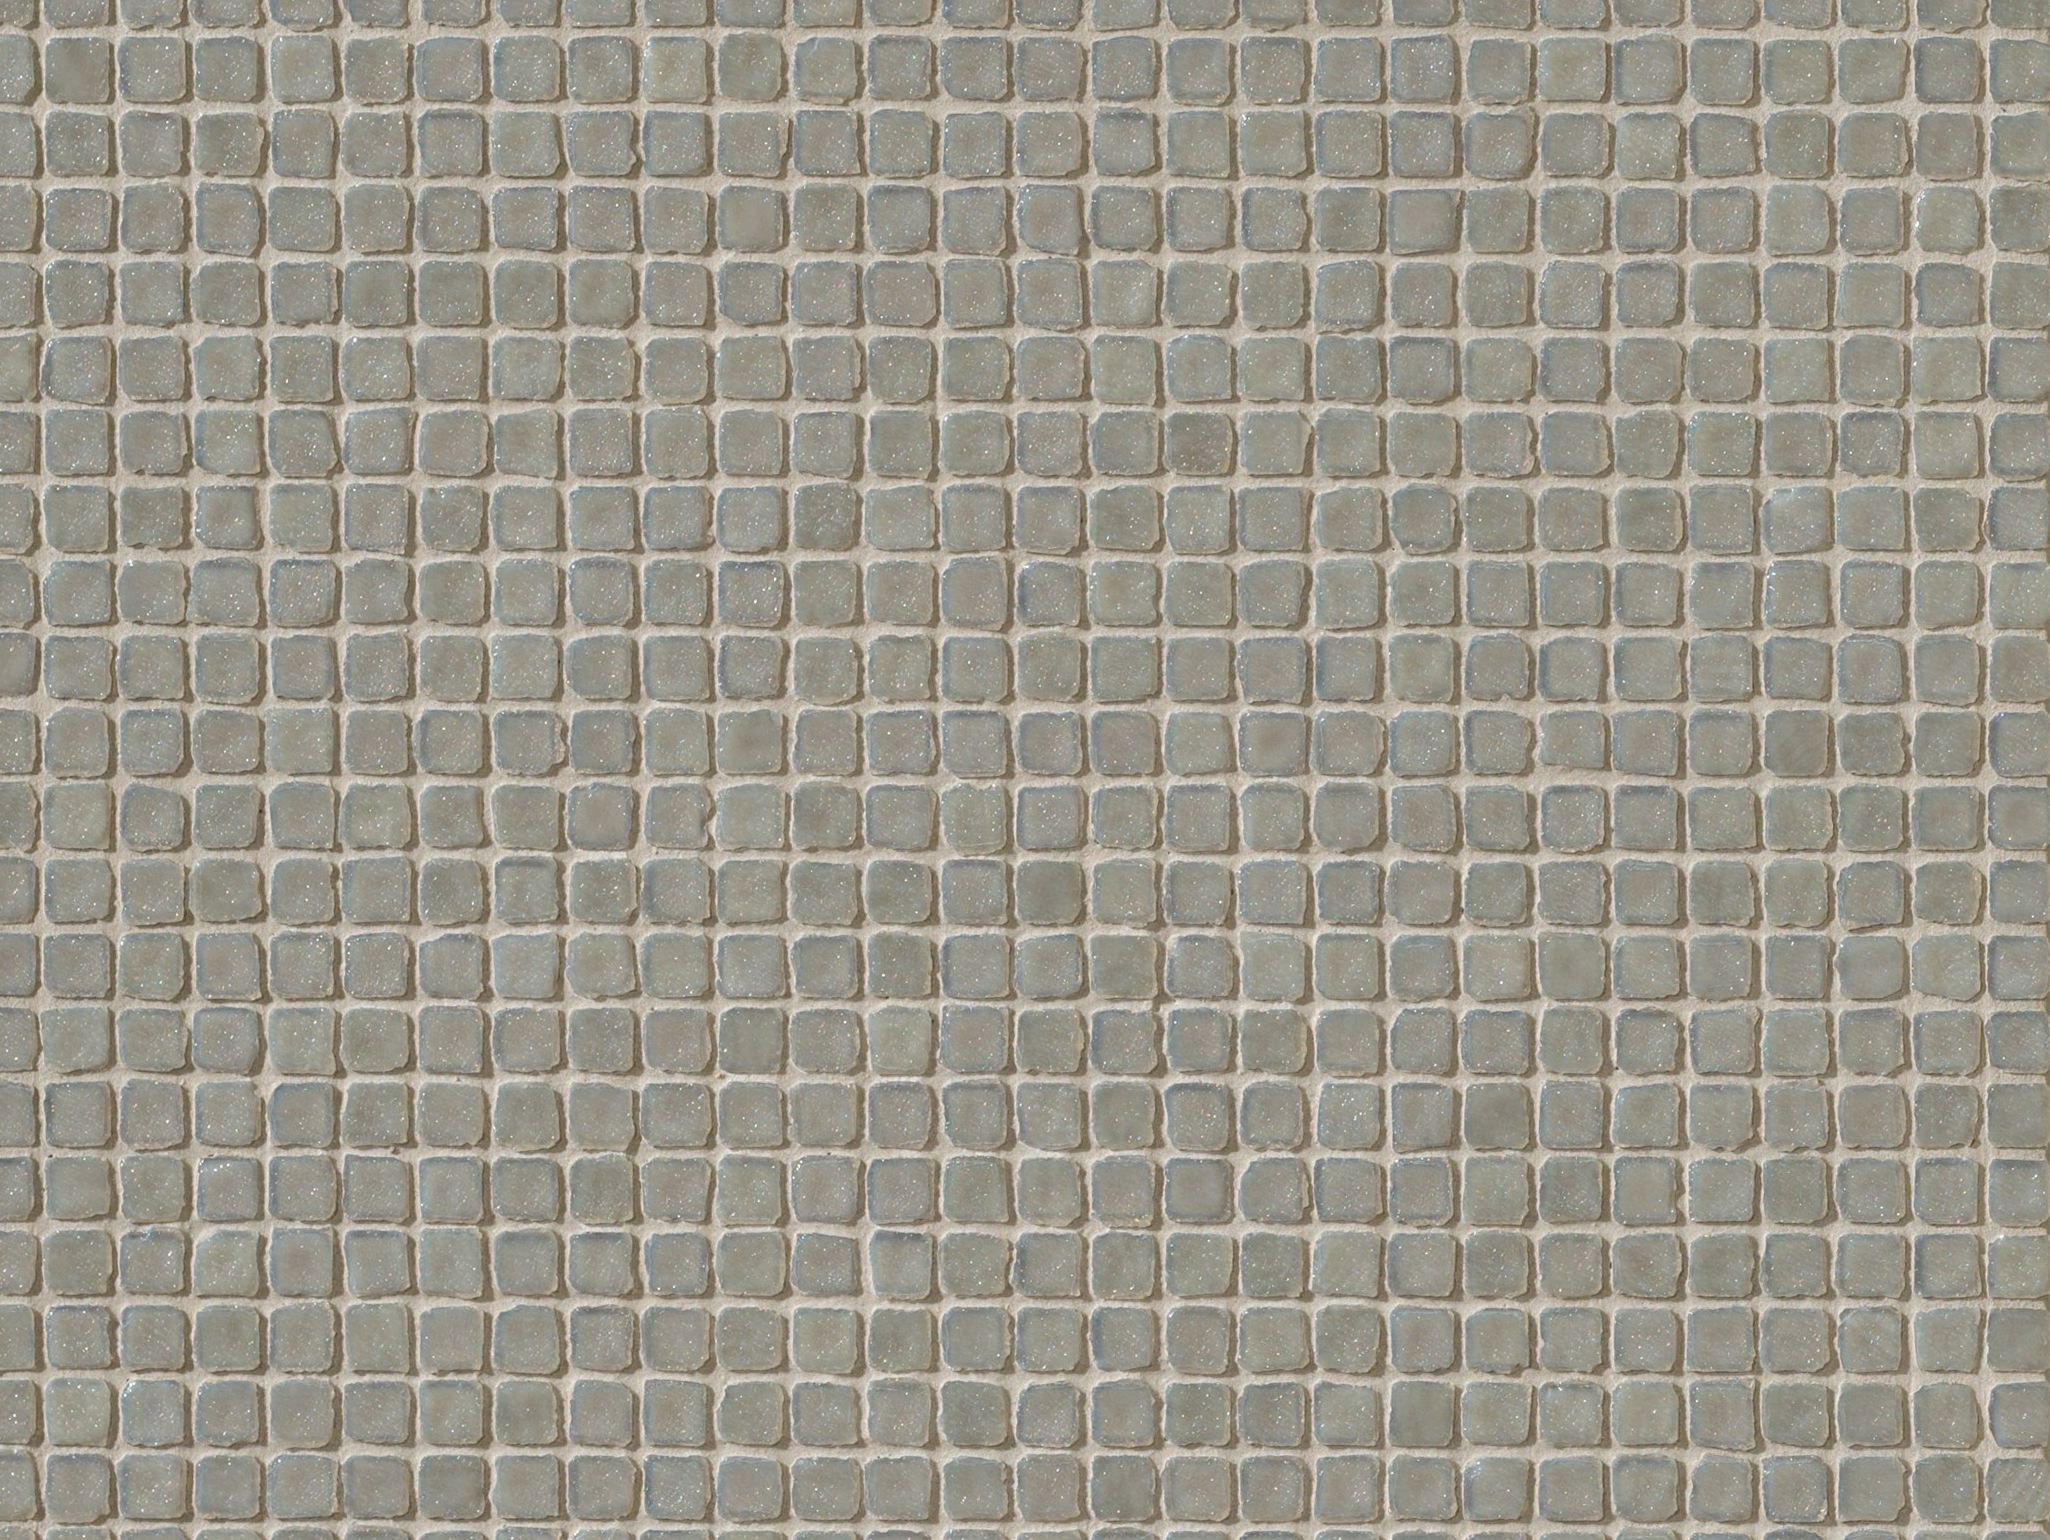 mosaico in gres porcellanato dechirer glass grigio by. Black Bedroom Furniture Sets. Home Design Ideas